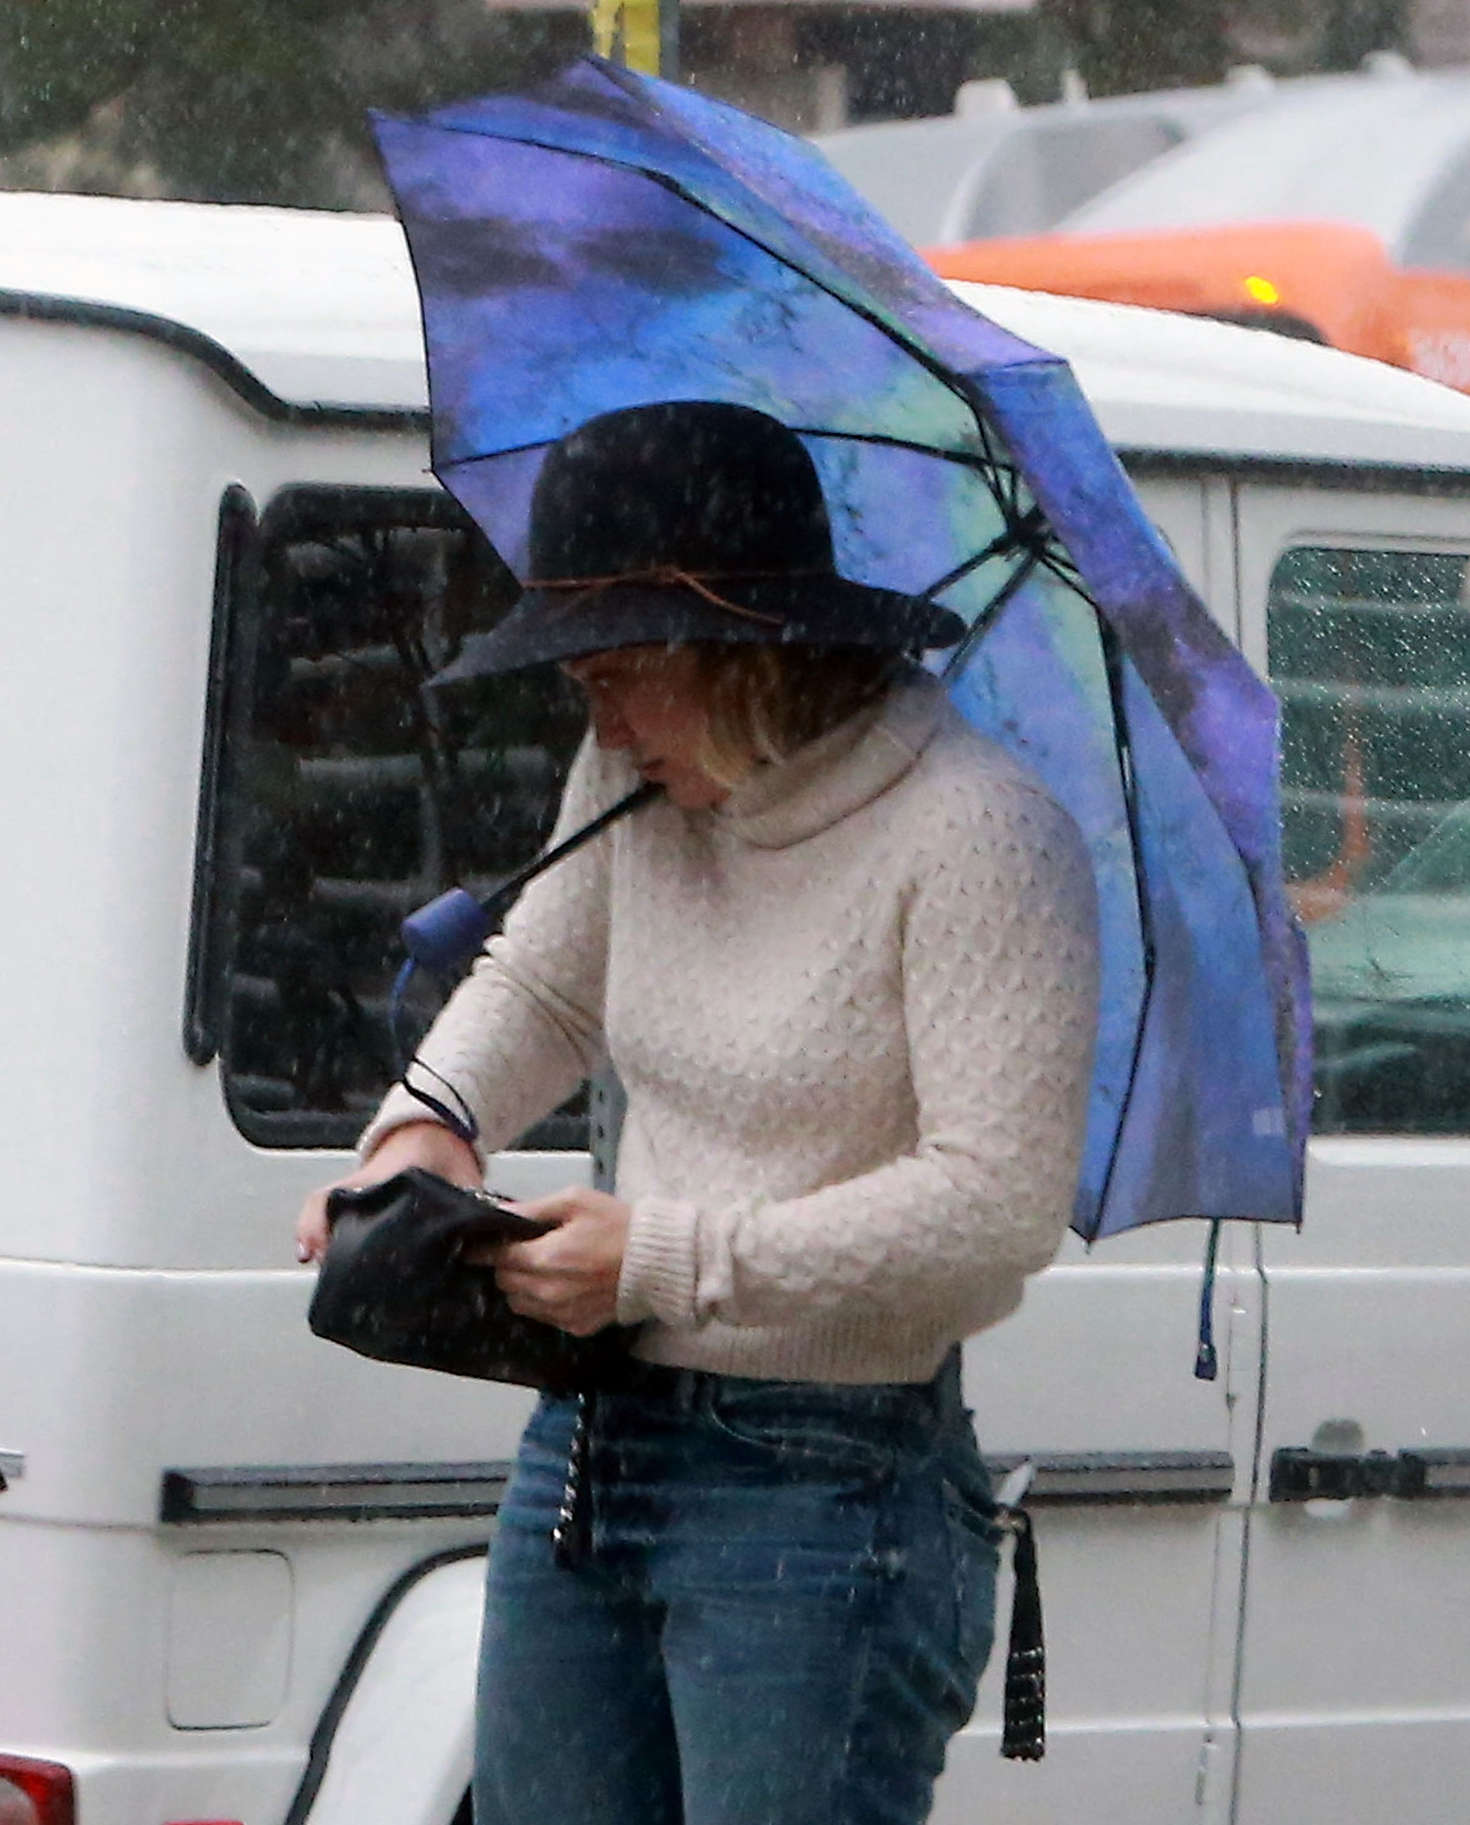 Hilary Duff 2016 : Hilary Duff in Jeans out on a rainy day -16